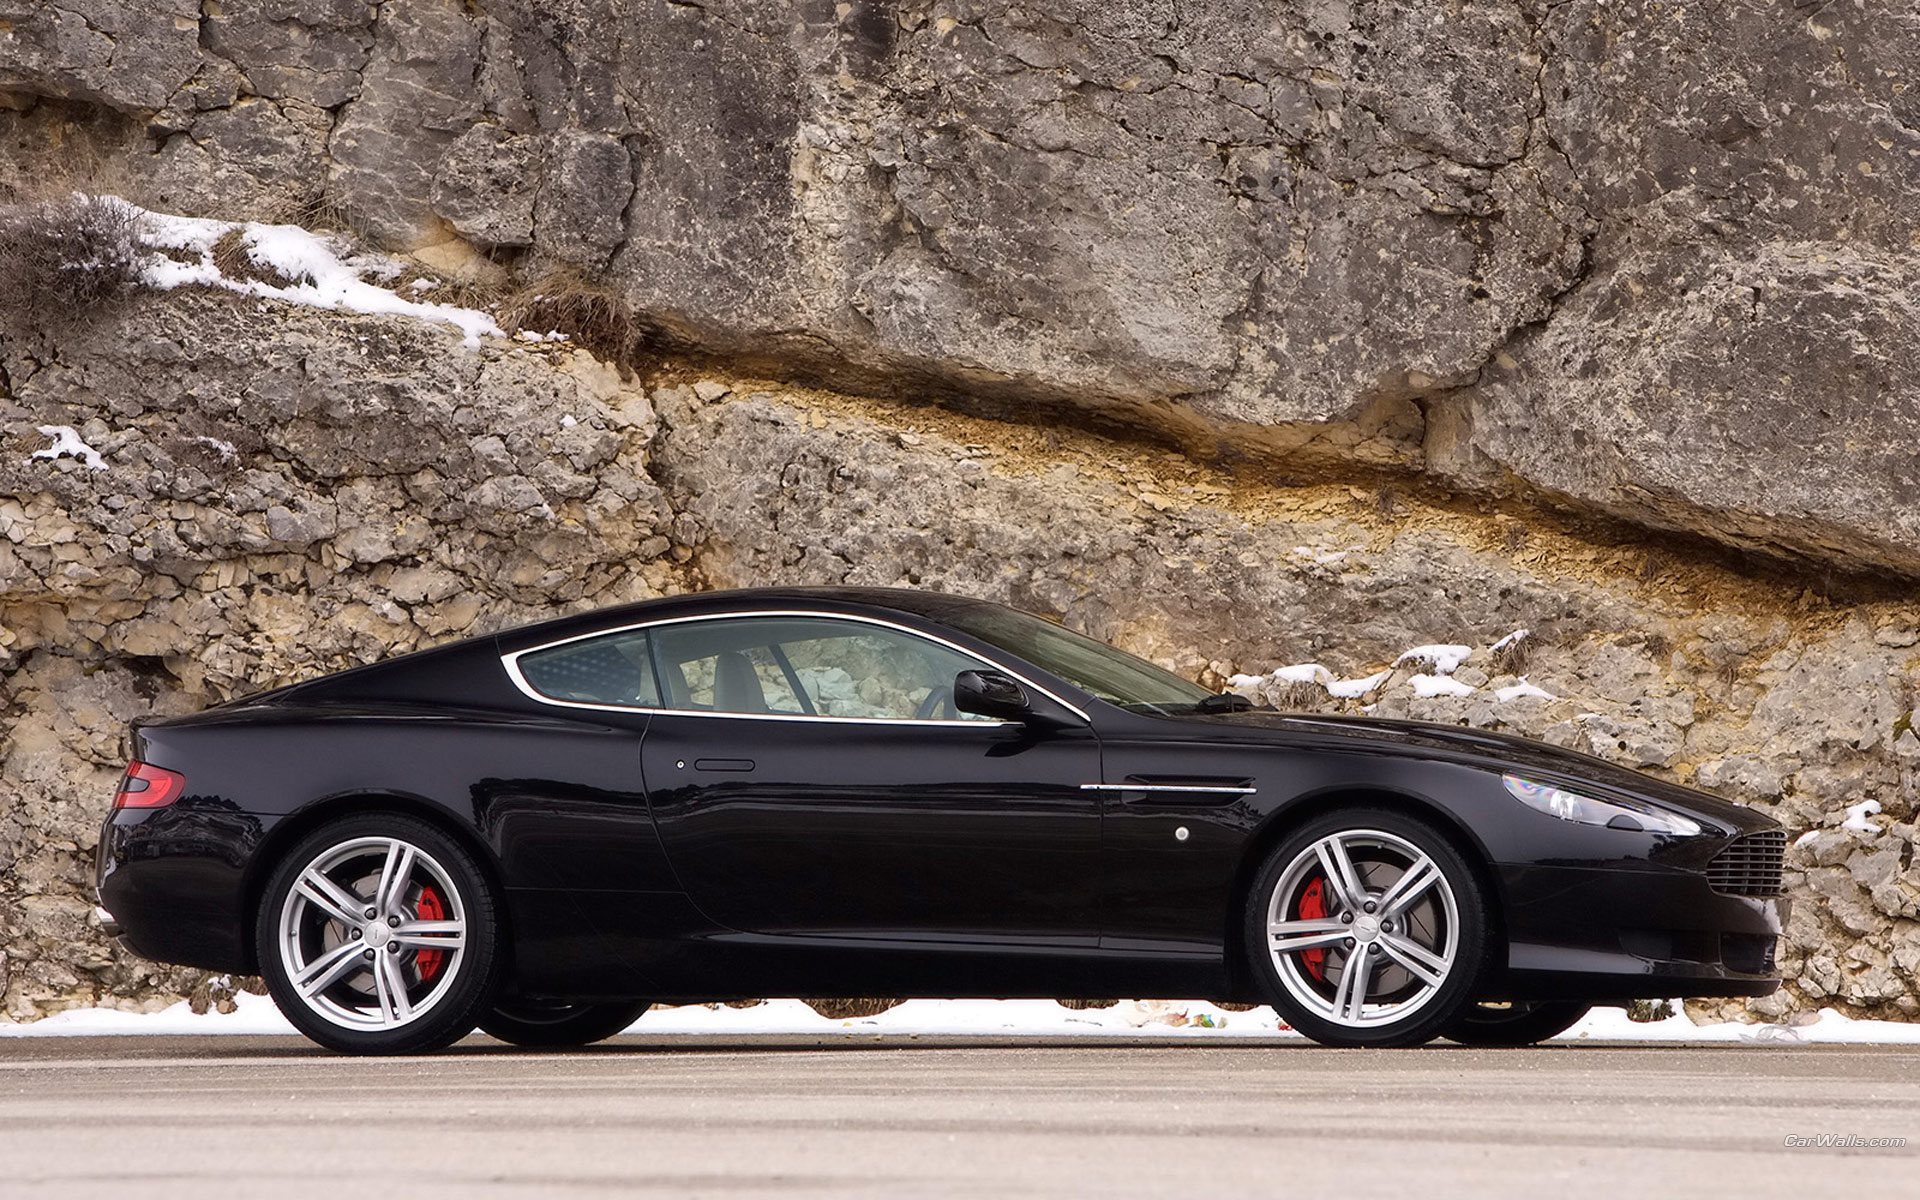 db9 – Automobile Wallpapers, in HD | Iphone | Android| Desktop 18 Wallpaper